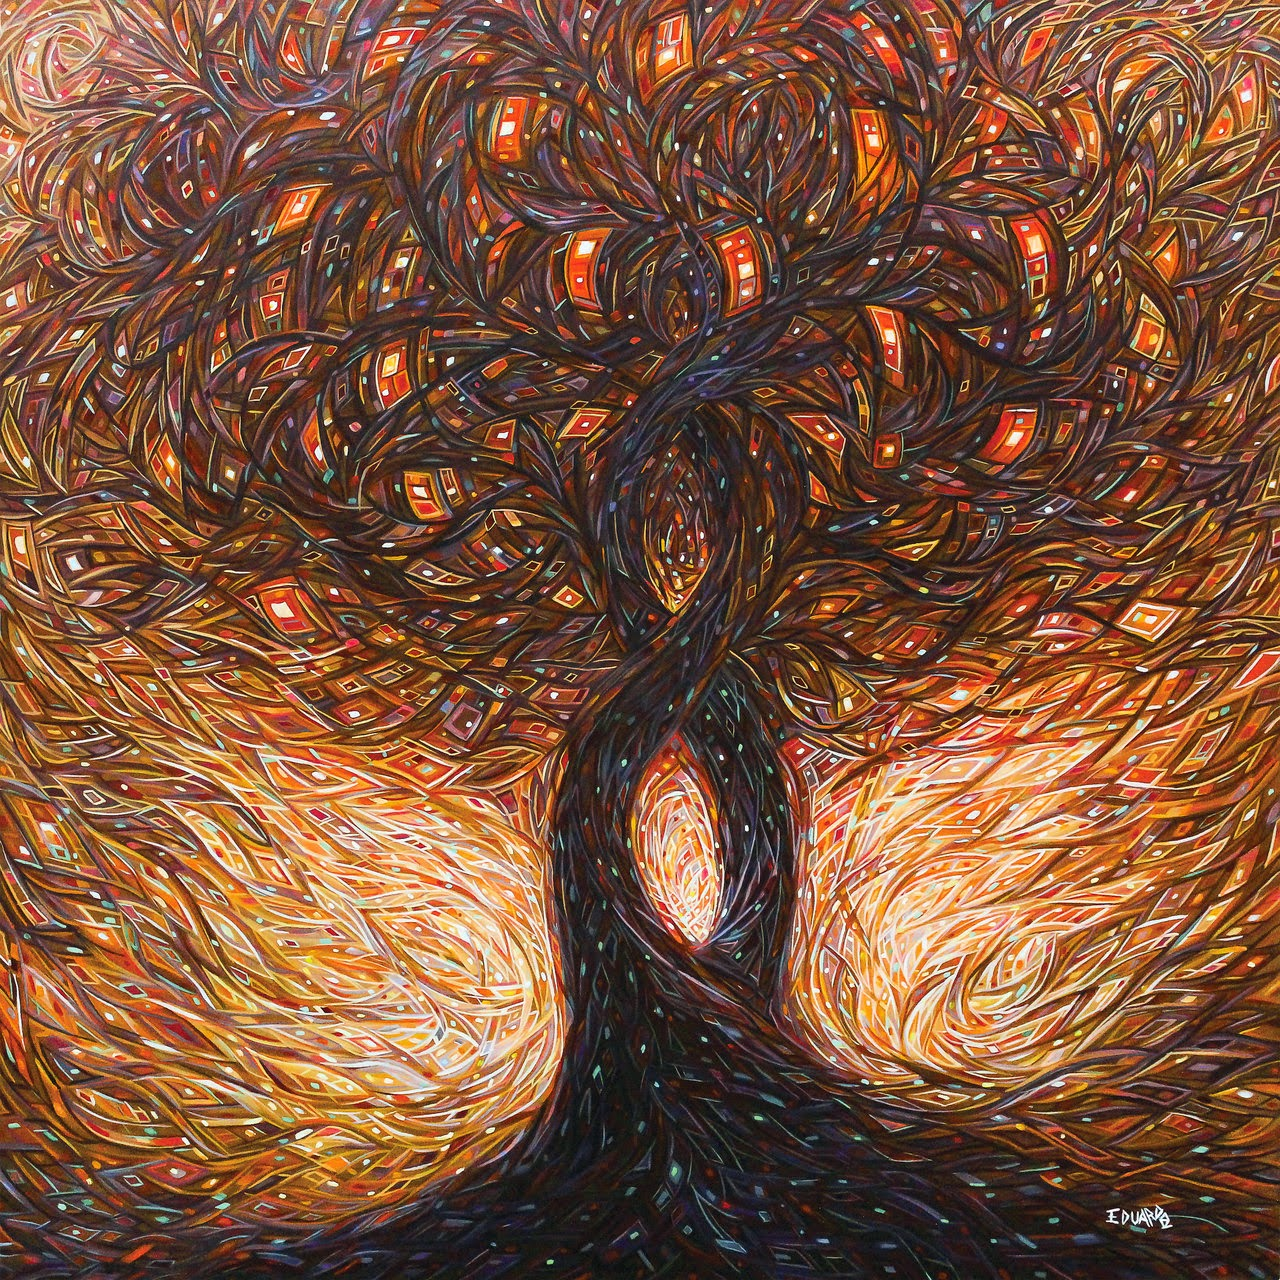 10-Tree-of-Life-Eduardo-R-Calzado-Paintings-in-Swirls-of-Colour-www-designstack-co